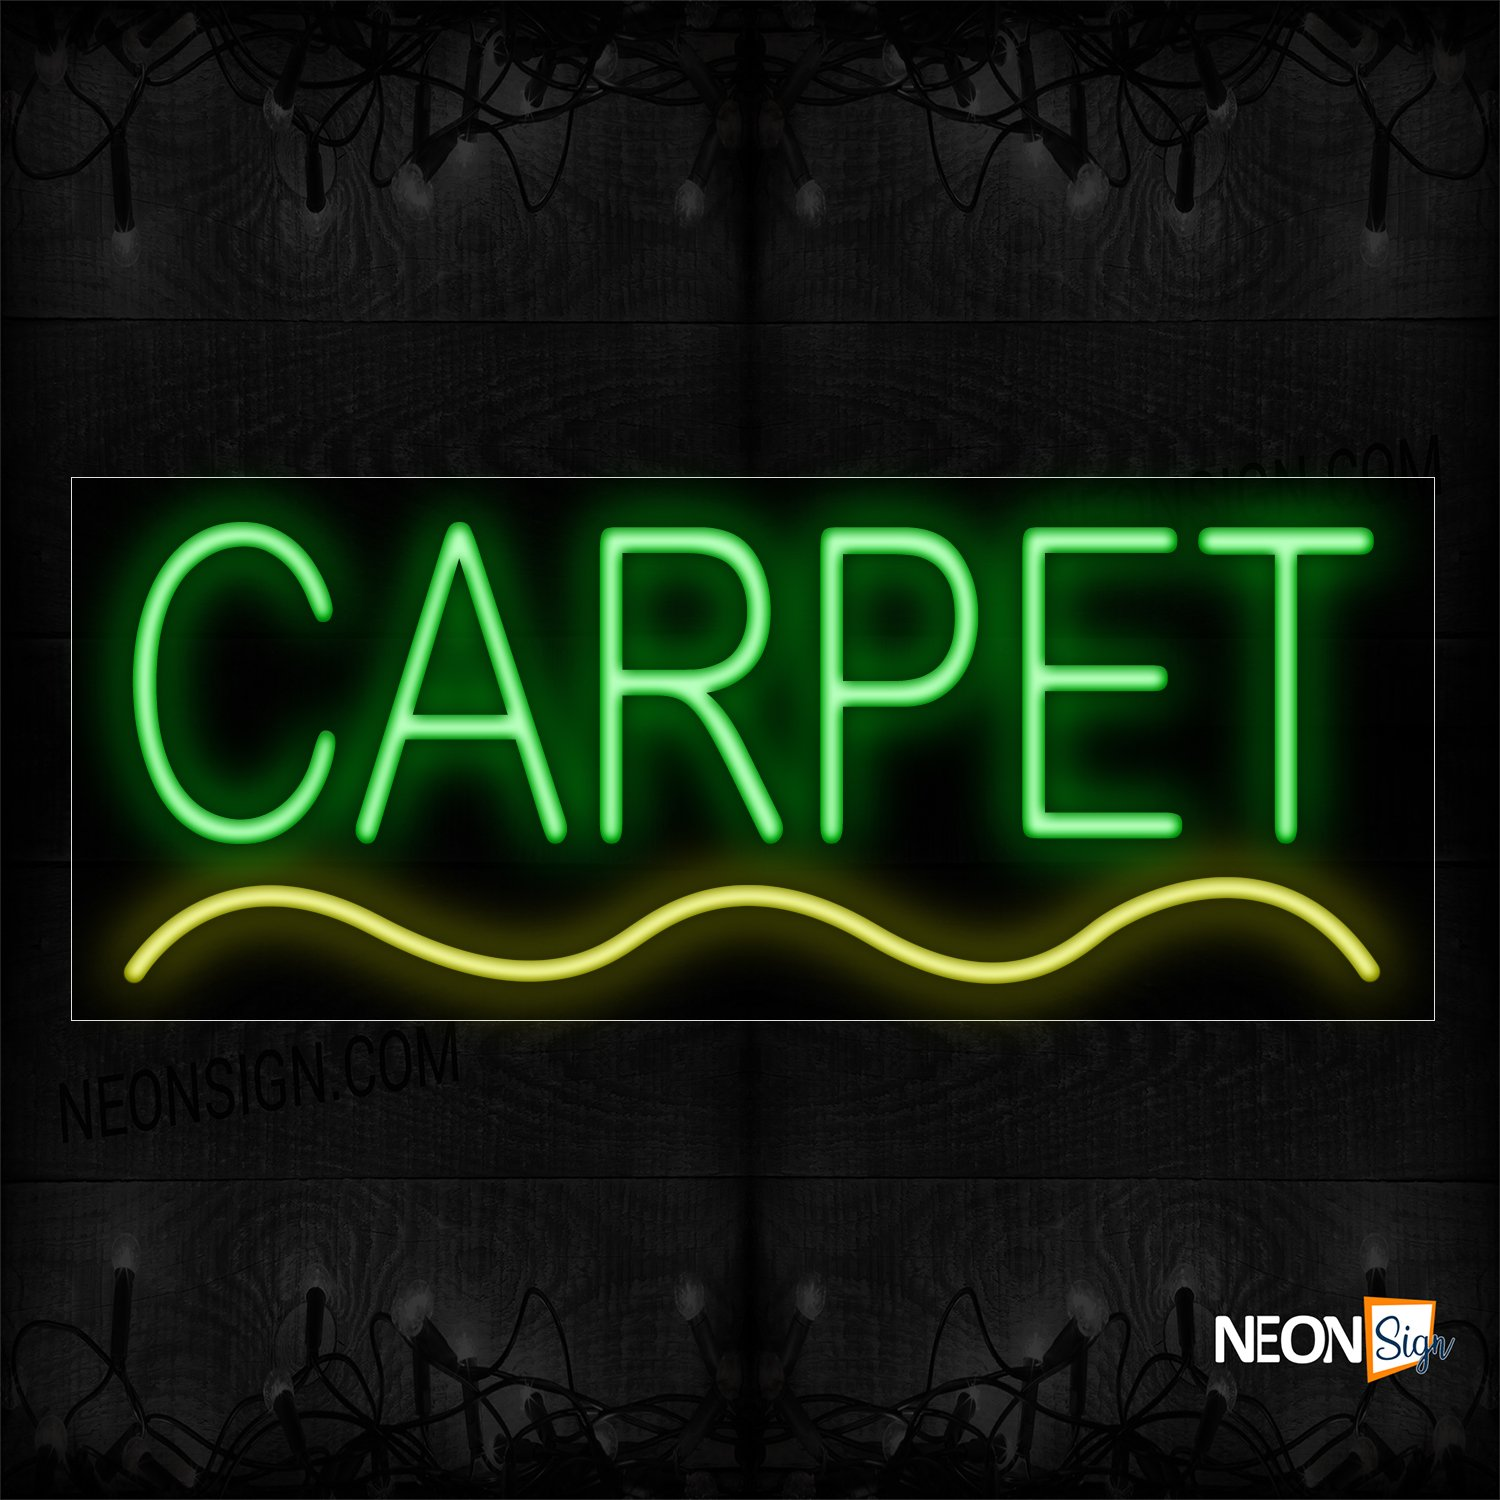 Image of 10033 Carpet In Green With Yellow Curved Line Neon Sign_13x32 Black Backing